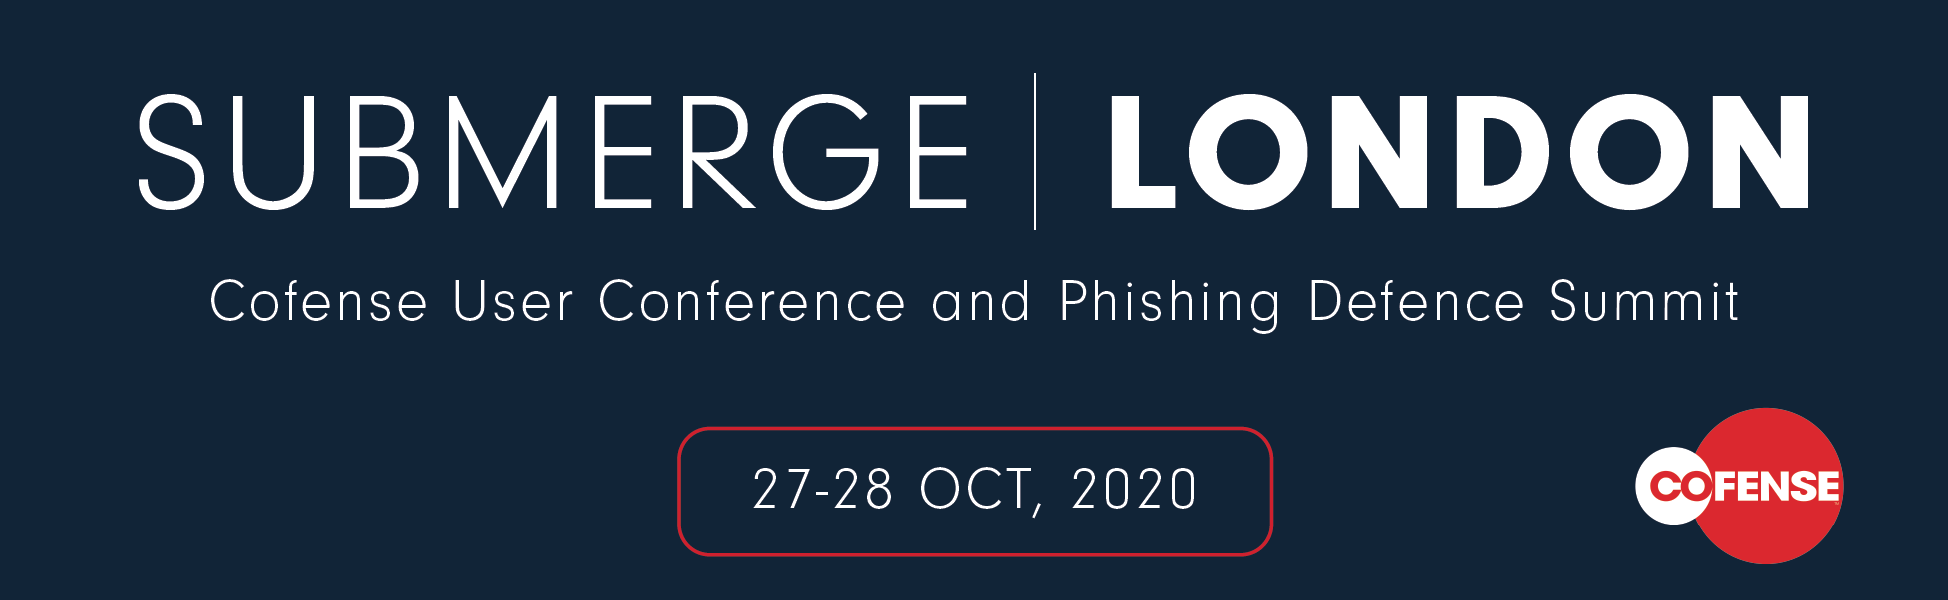 Submerge - London 2020: Cofense User Conference and Phishing Defence Summit